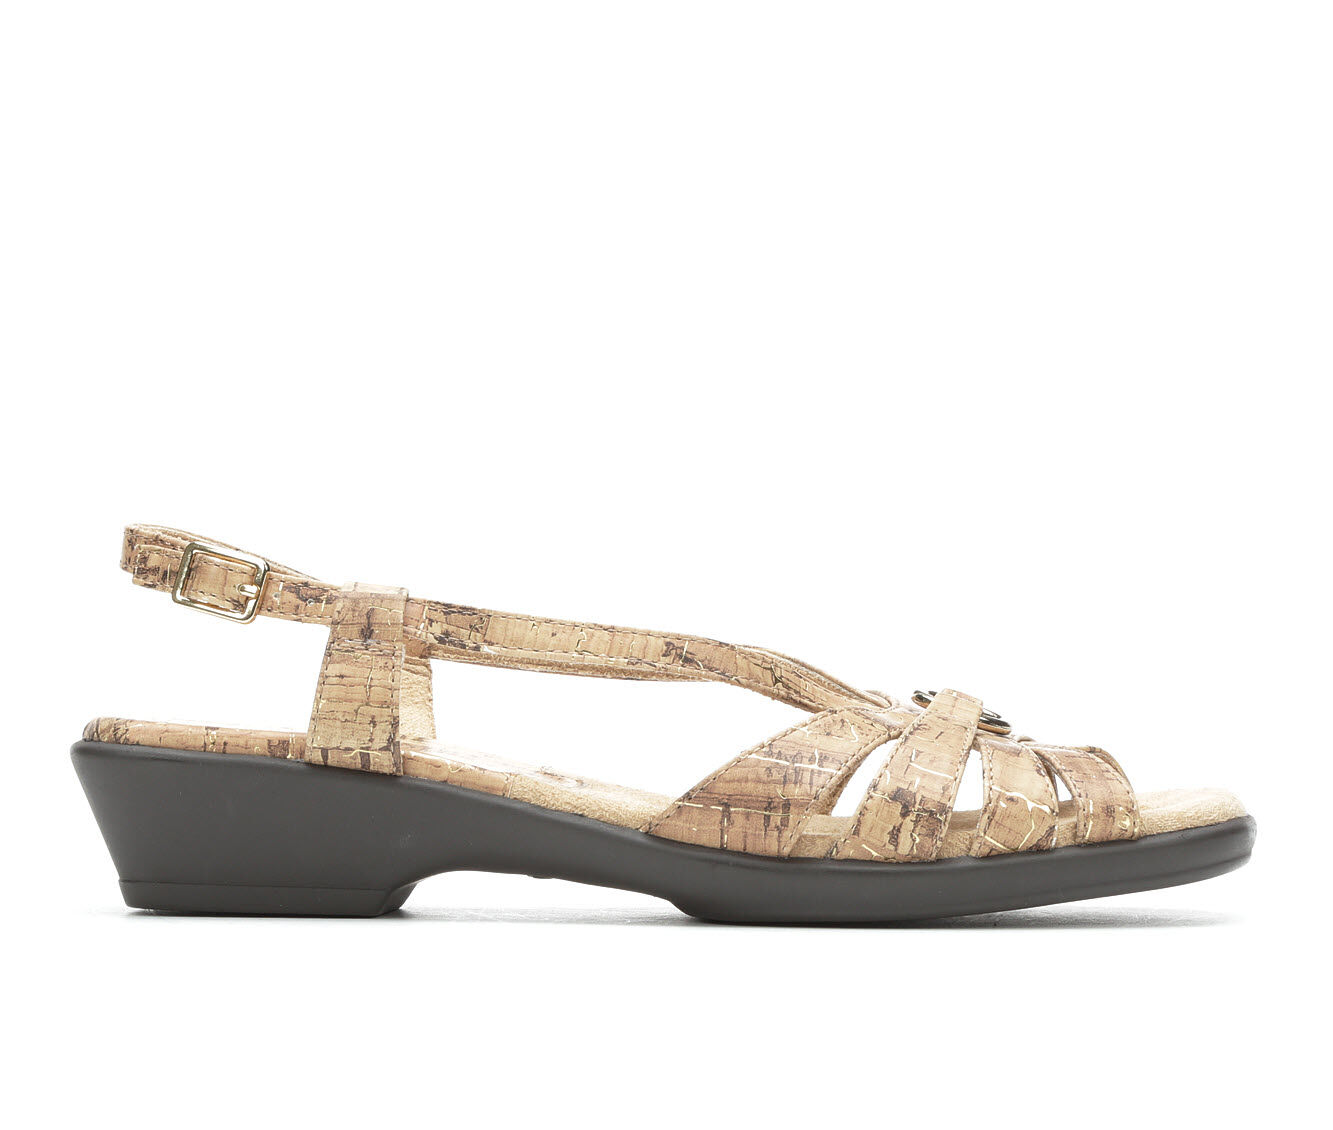 The most popular Women's Easy Street Amy Sandals Cork